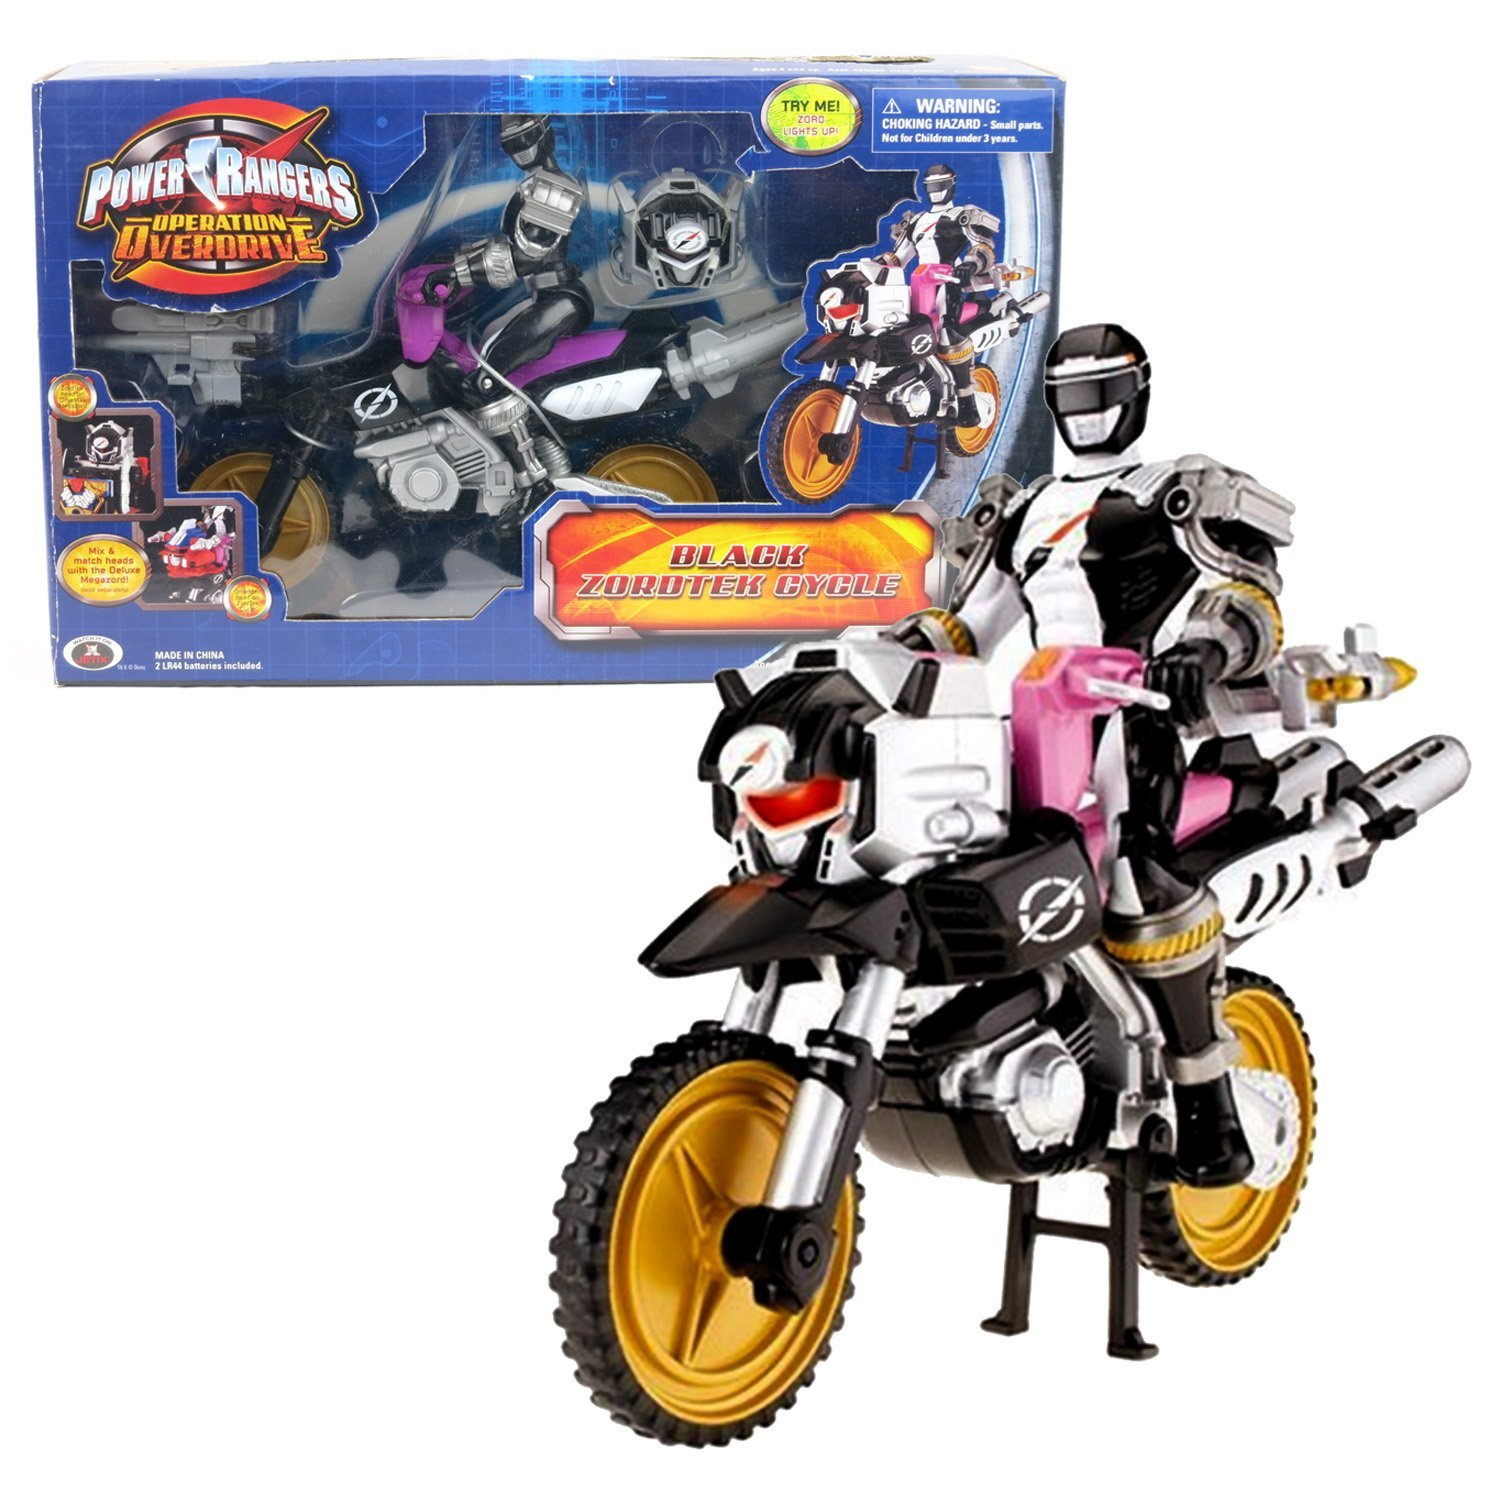 Bandai Year 2007 Power Rangers Operation Overdrive Series 8 Inch Long Action Figure Vehicle - BLACK ZORDTEK CYCLE with Black Power Ranger and Light-Up Zord Head